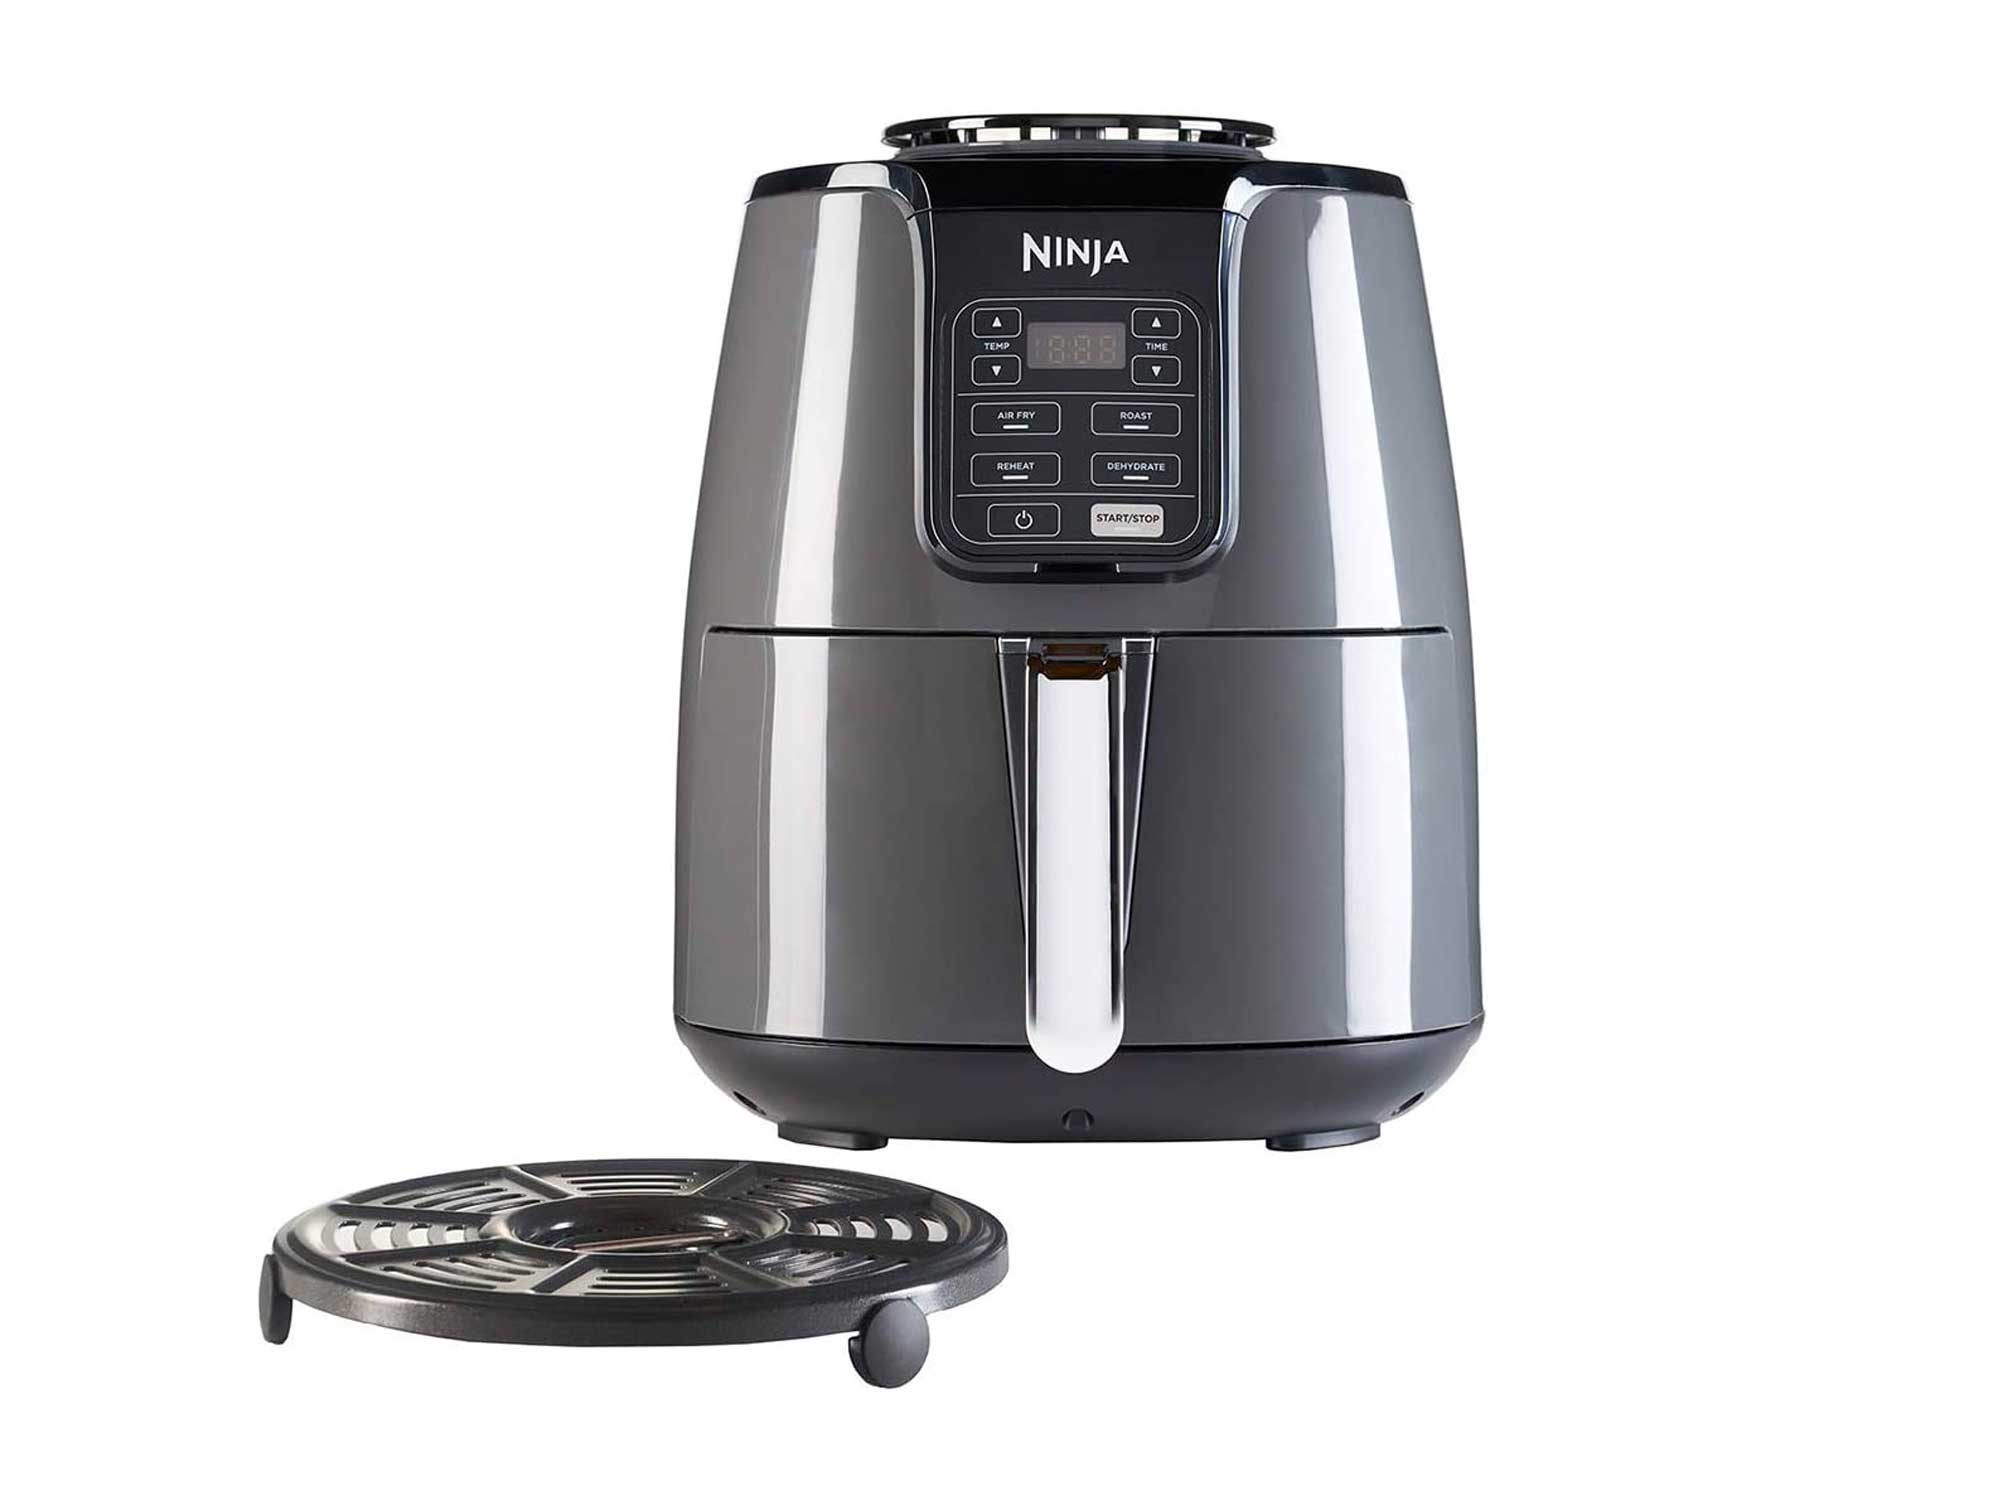 Ninja Air Fryer 3.8 Litres, Grey and Black